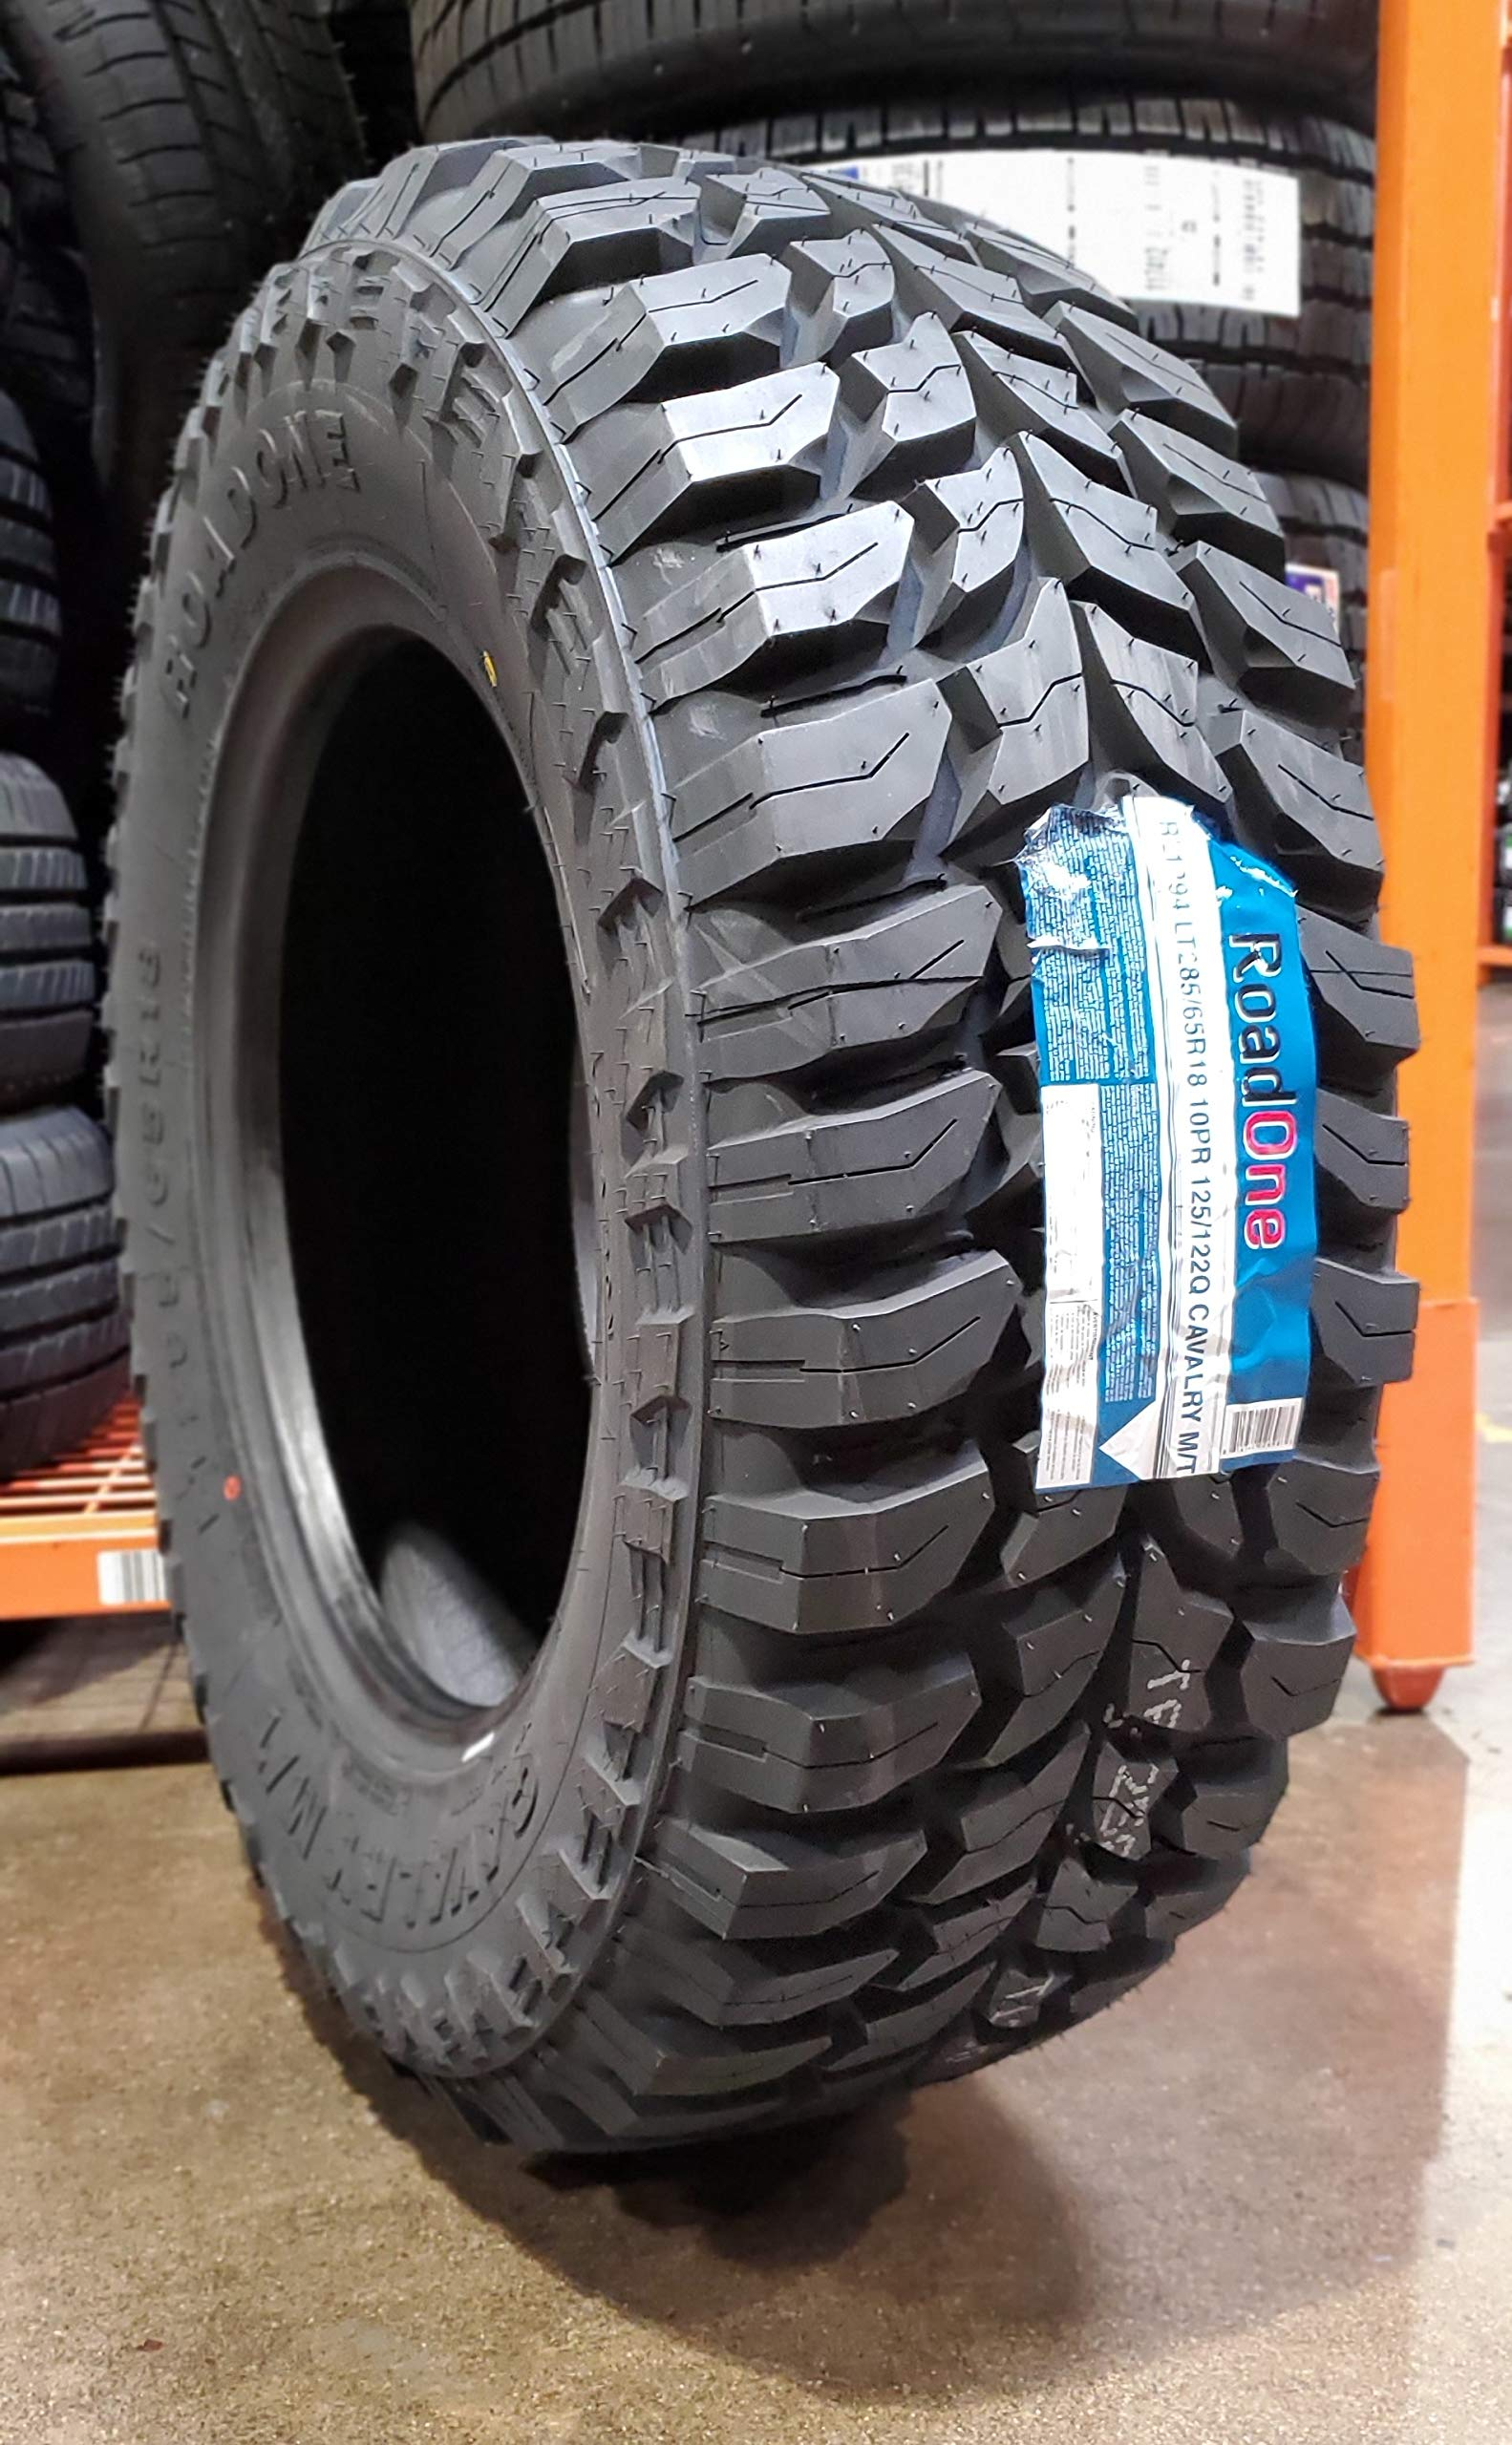 Road One Cavalry M/T Mud Tire RL1294 285 65 18 LT285/65R18, E Load Rated by Road One